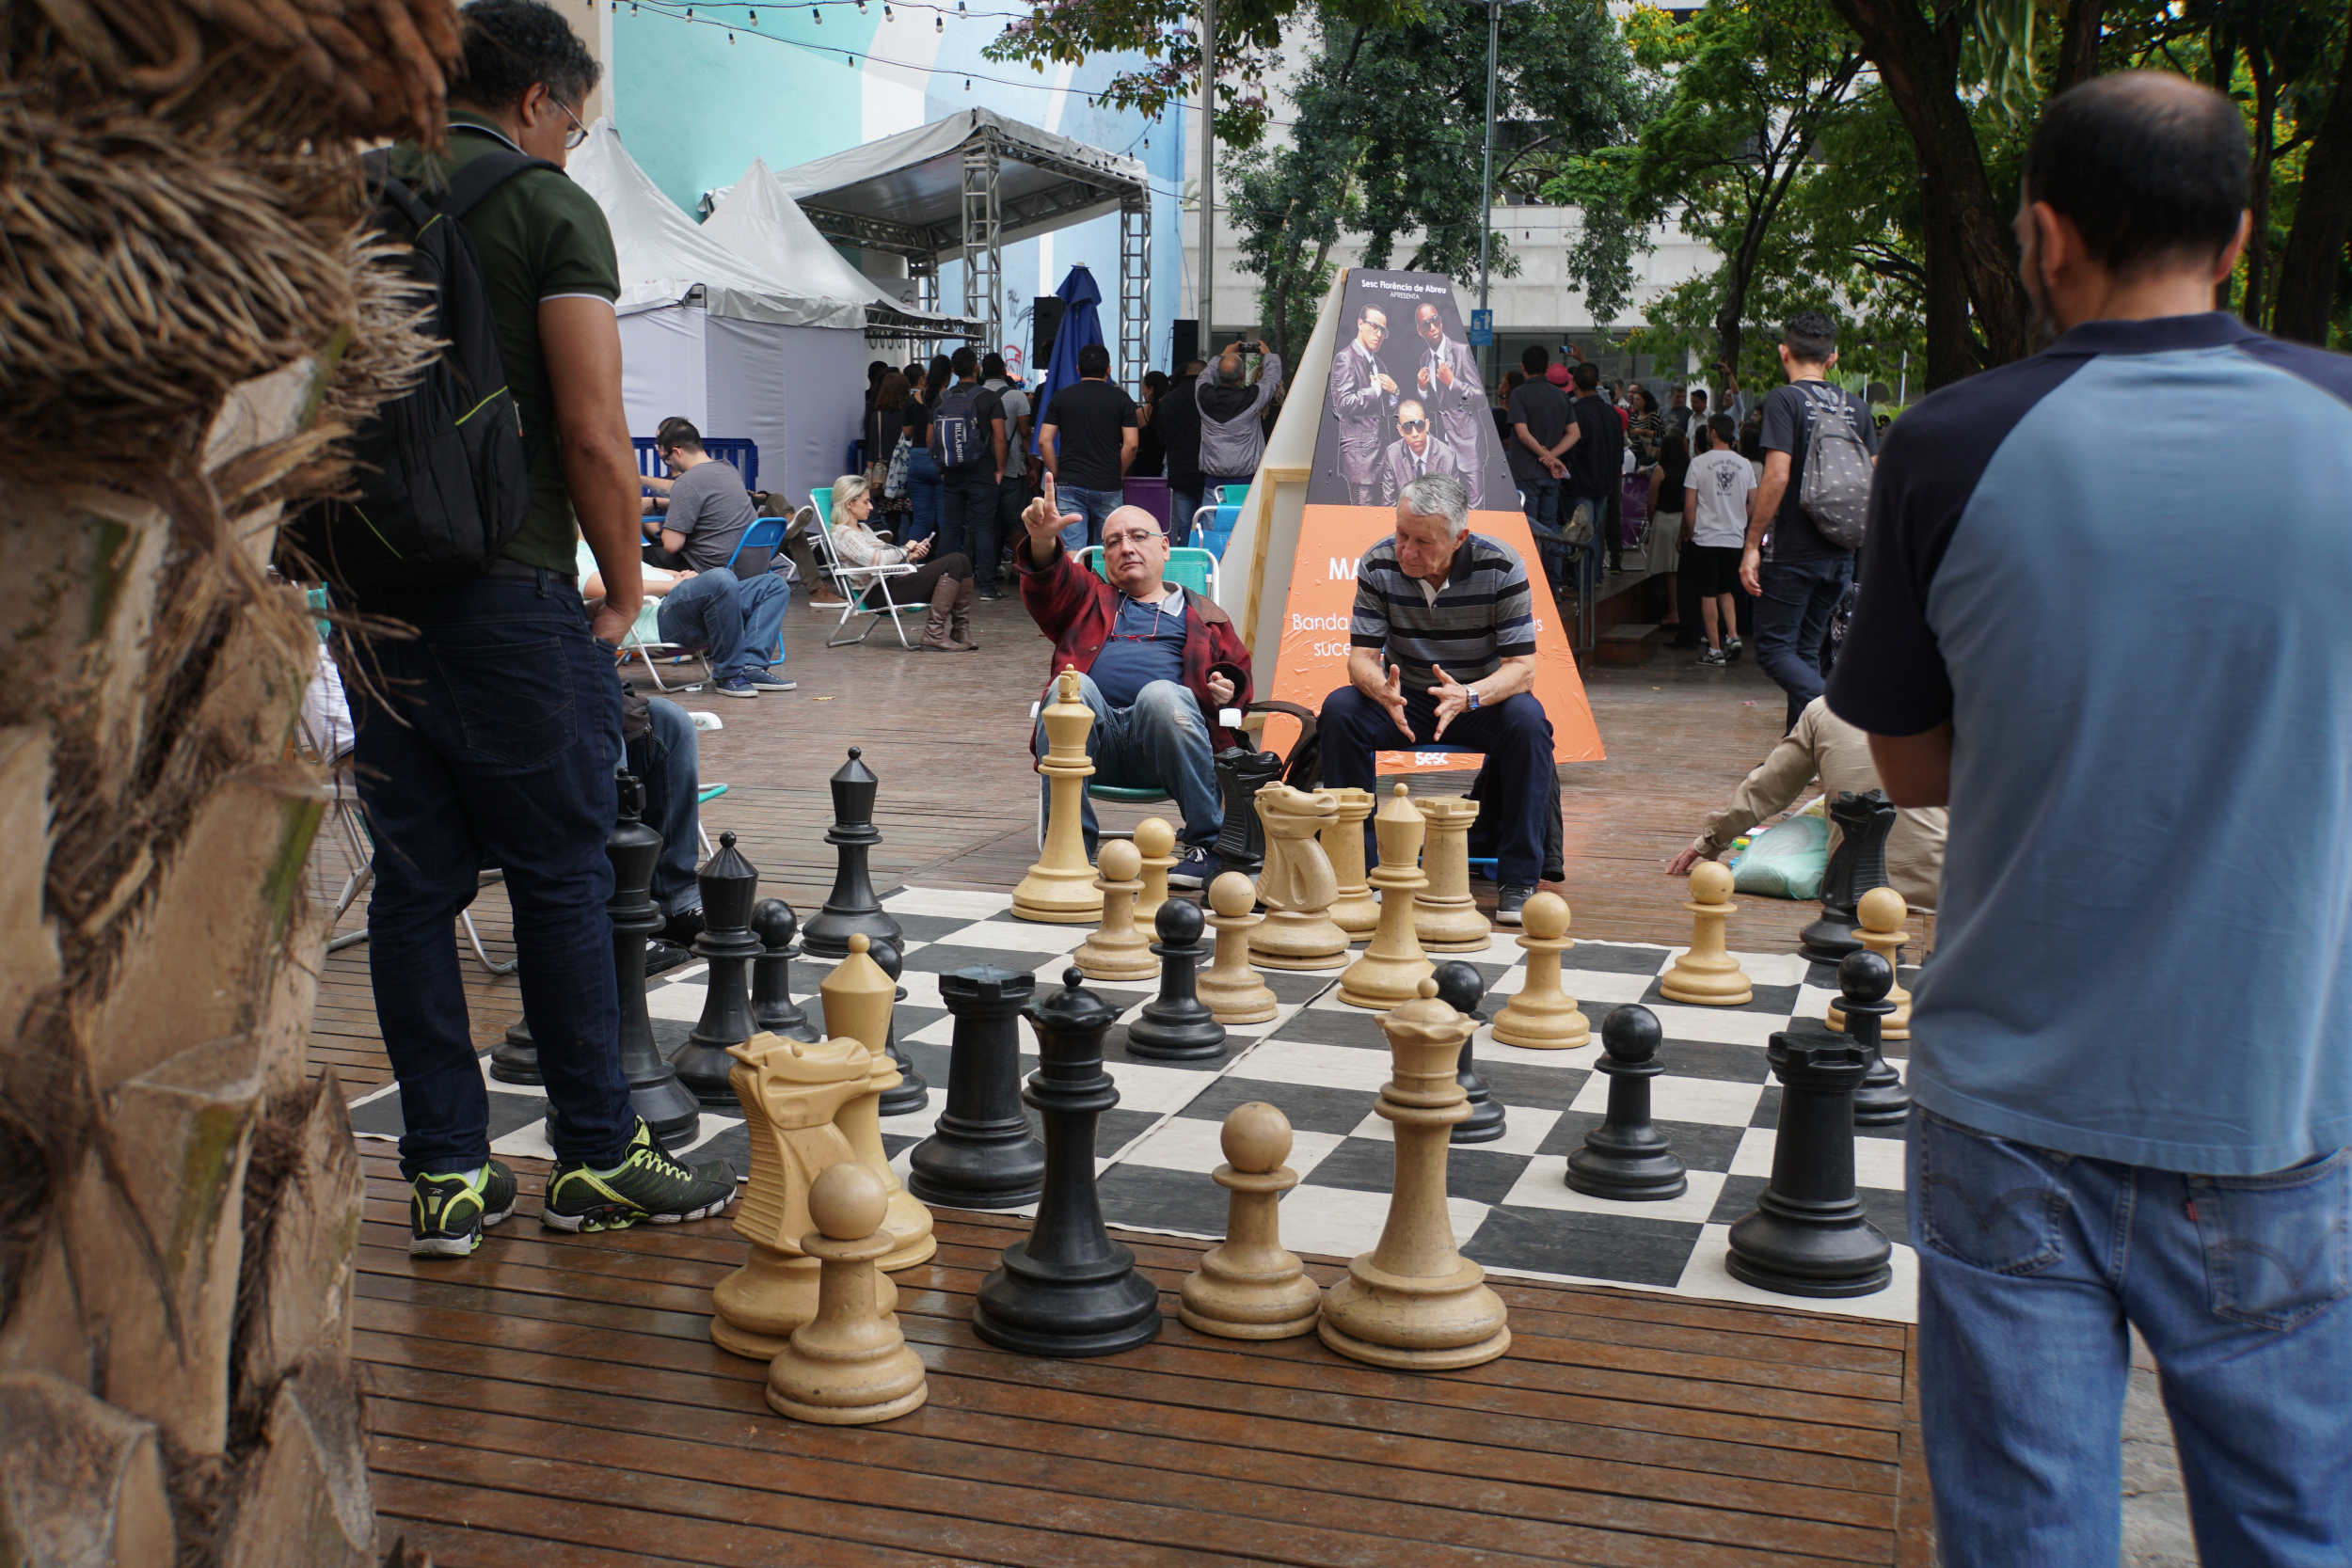 43. Chess in the square